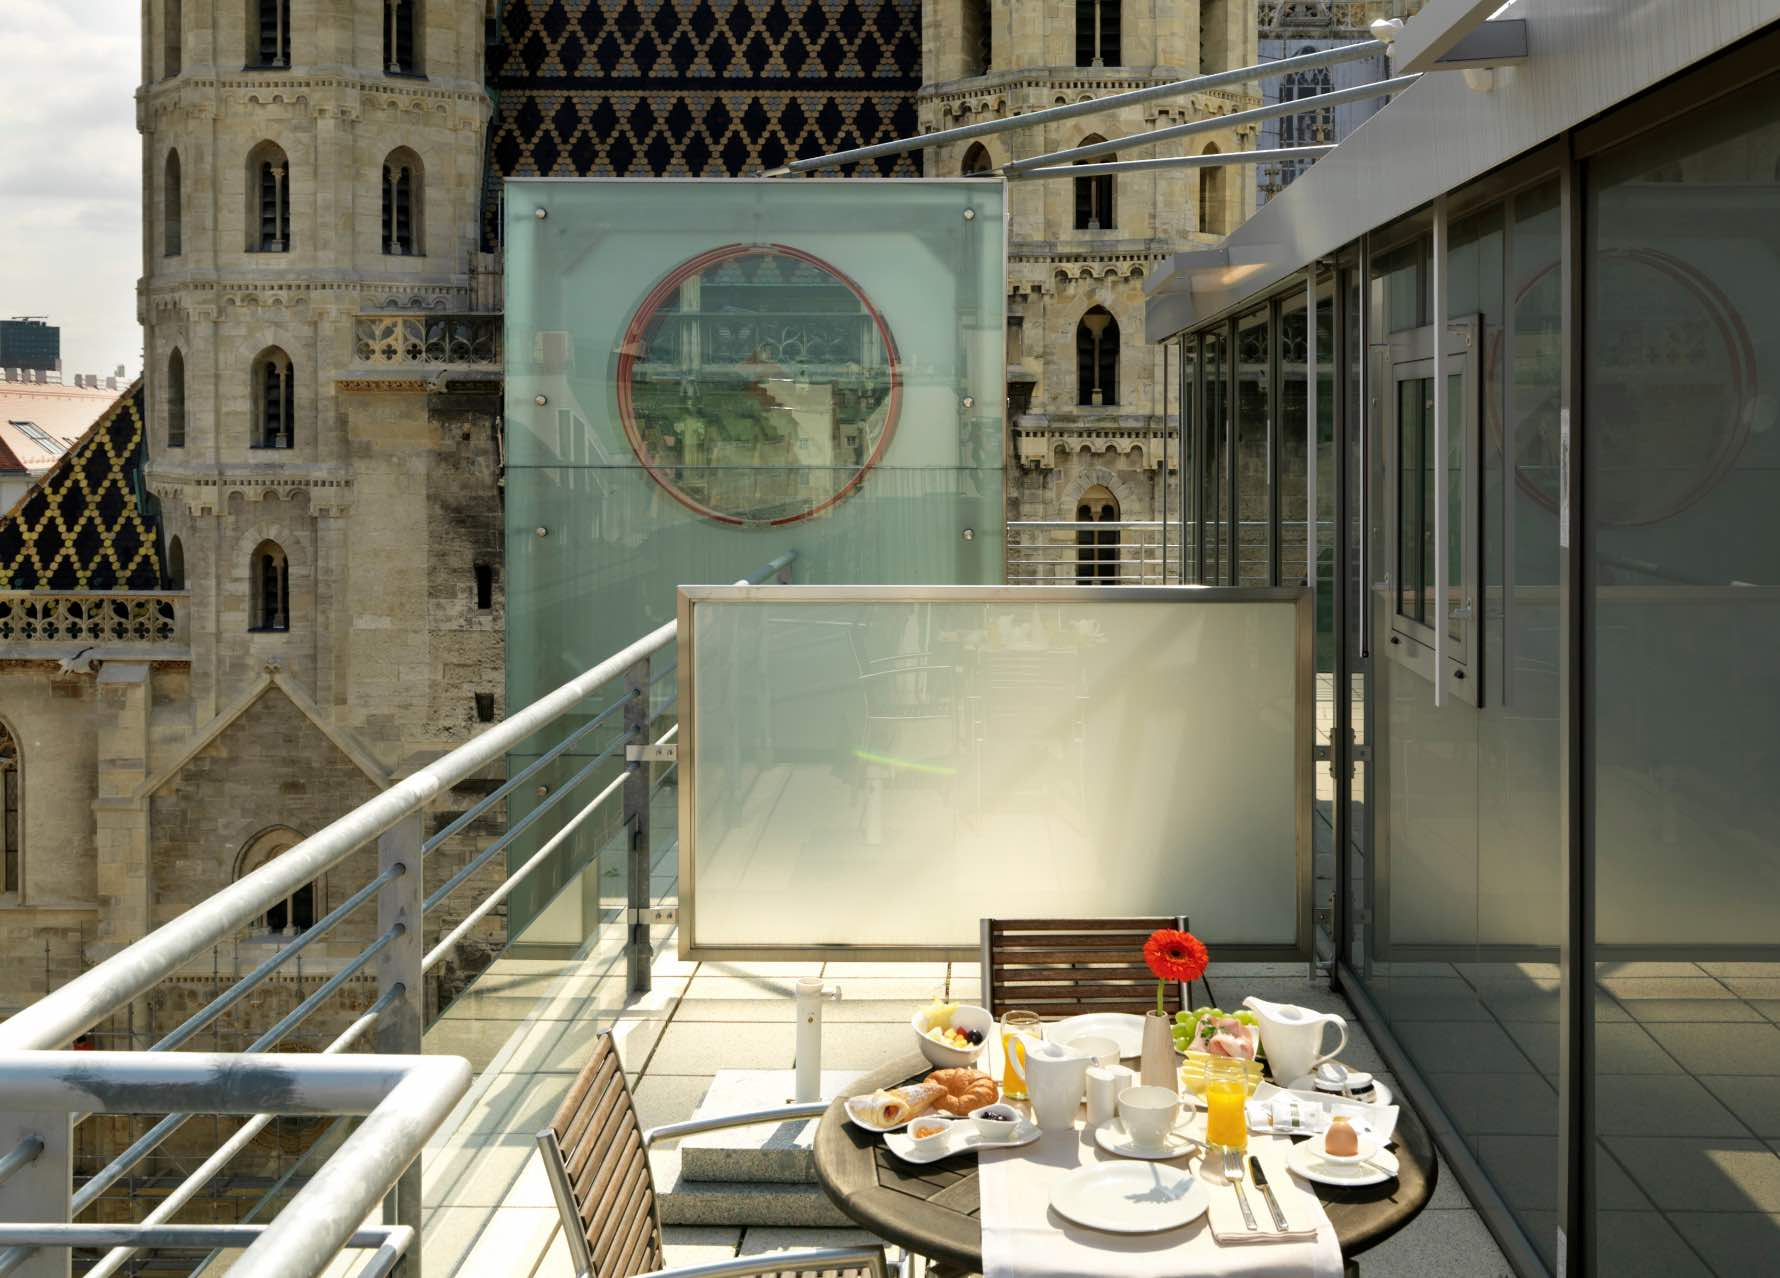 Hotel am Stephansplatz - A Perfect Hotel View in Vienna2.jpg